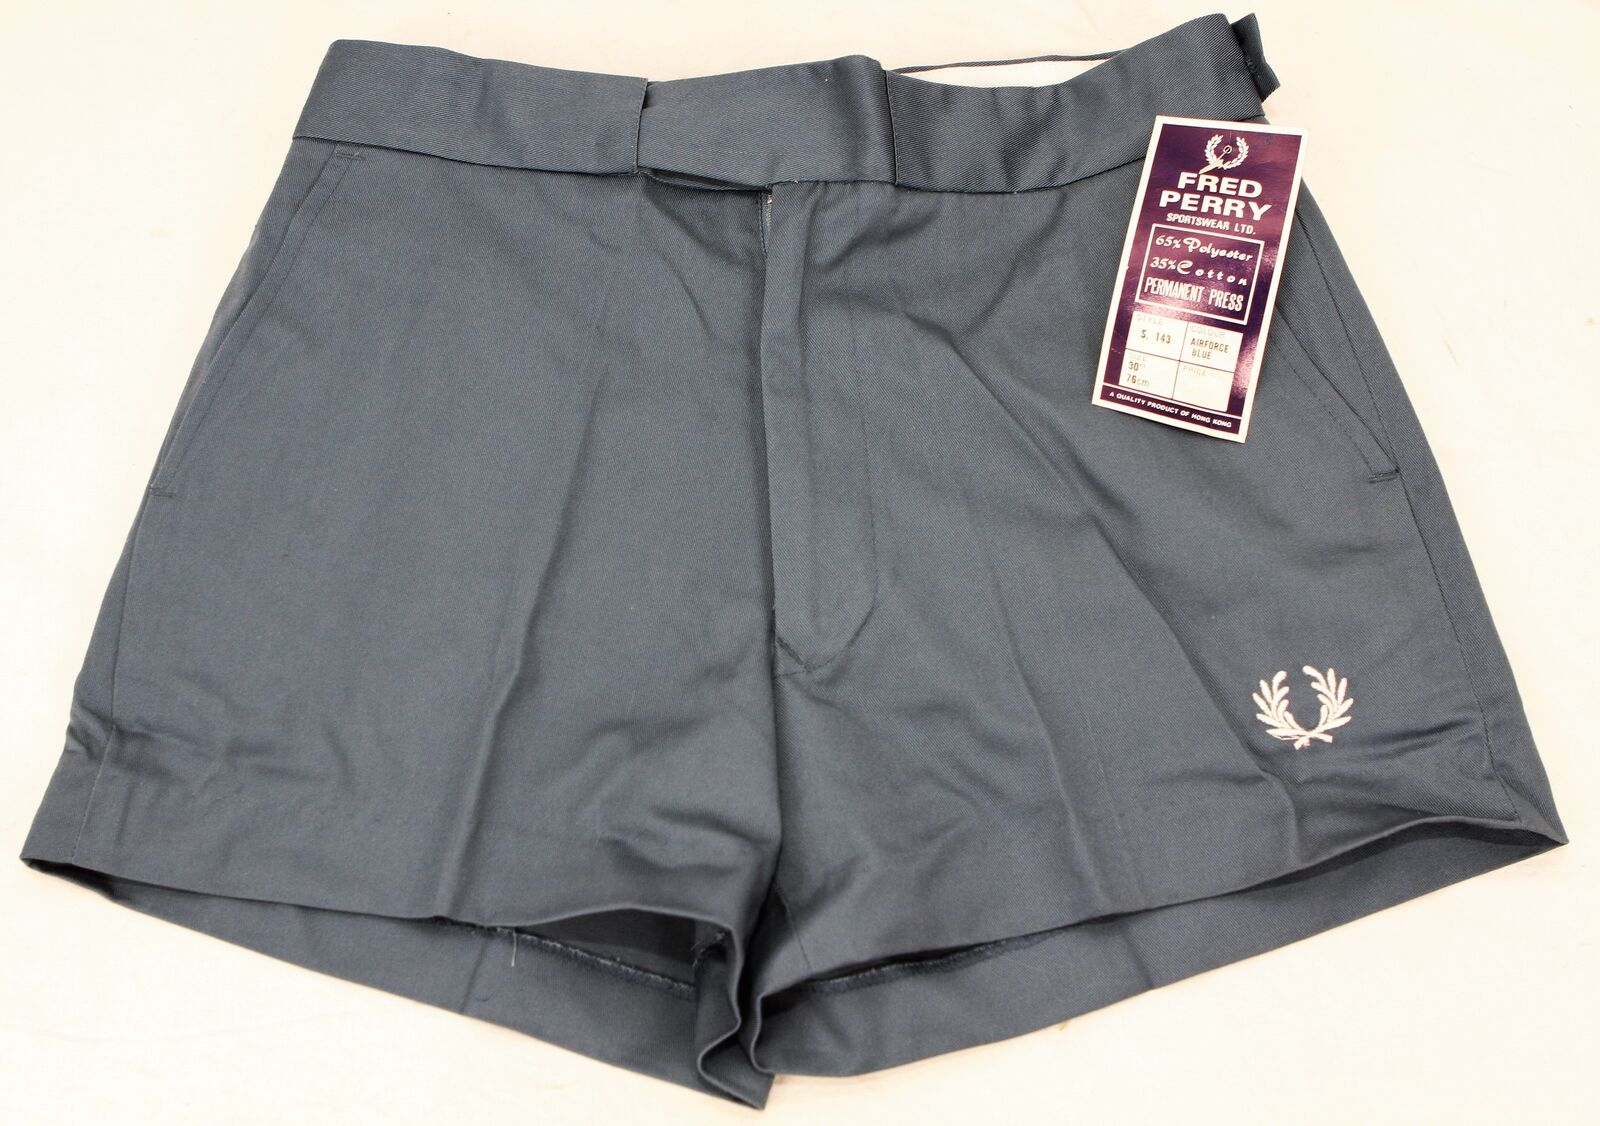 UNWORN Vintage 70s FRED PERRY  Tennis SHORTS  30